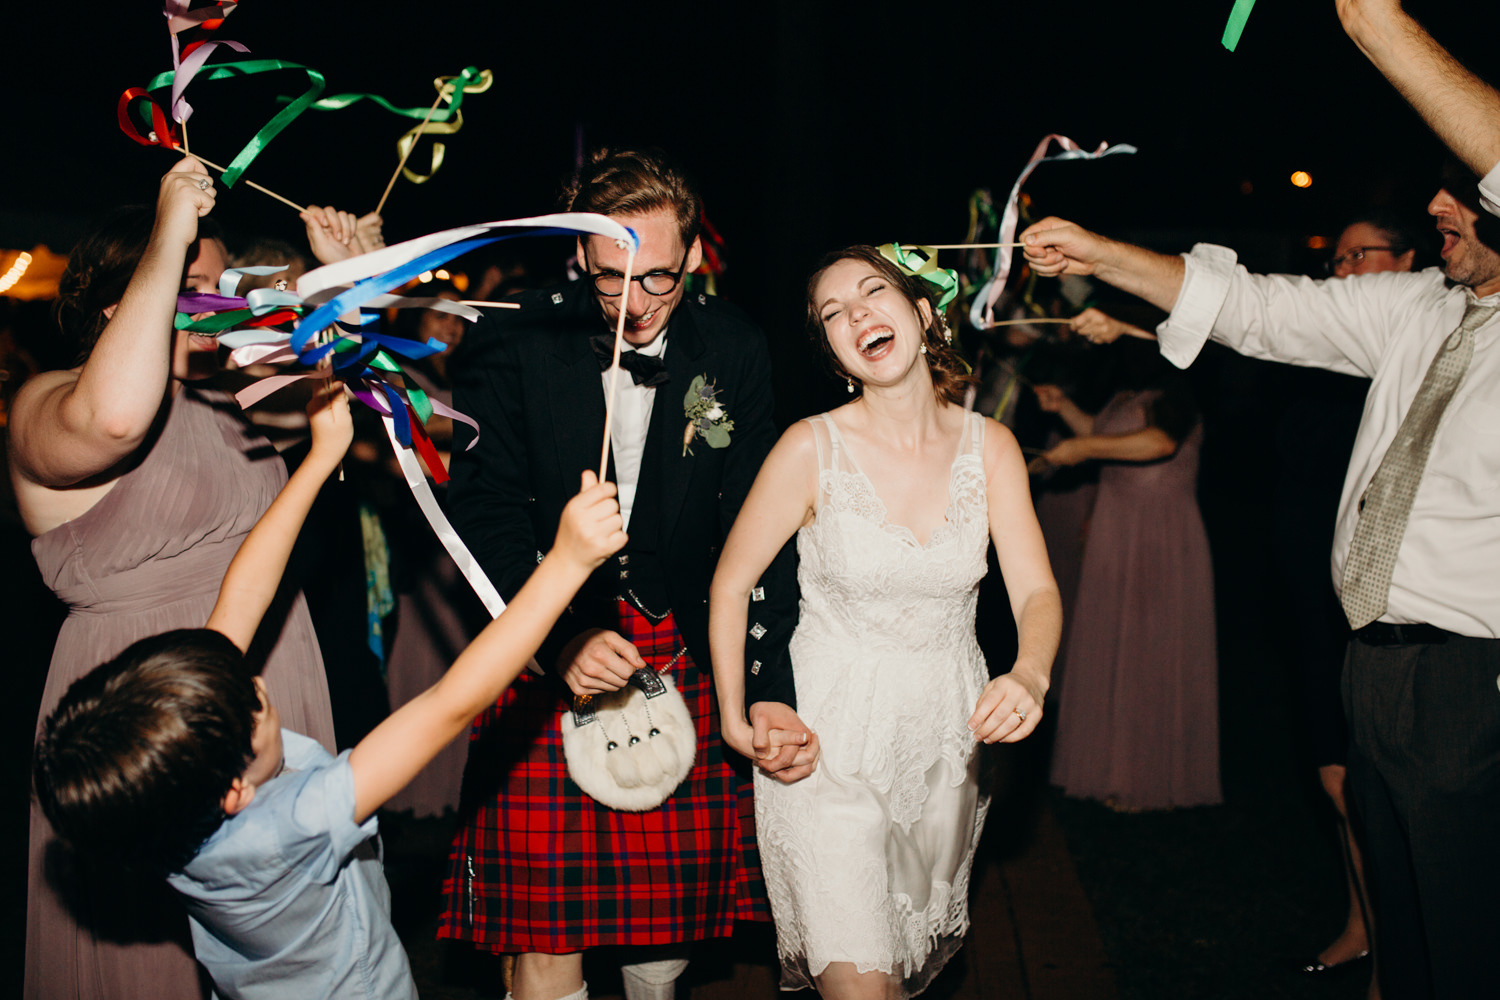 scottishwedding-2080.jpg